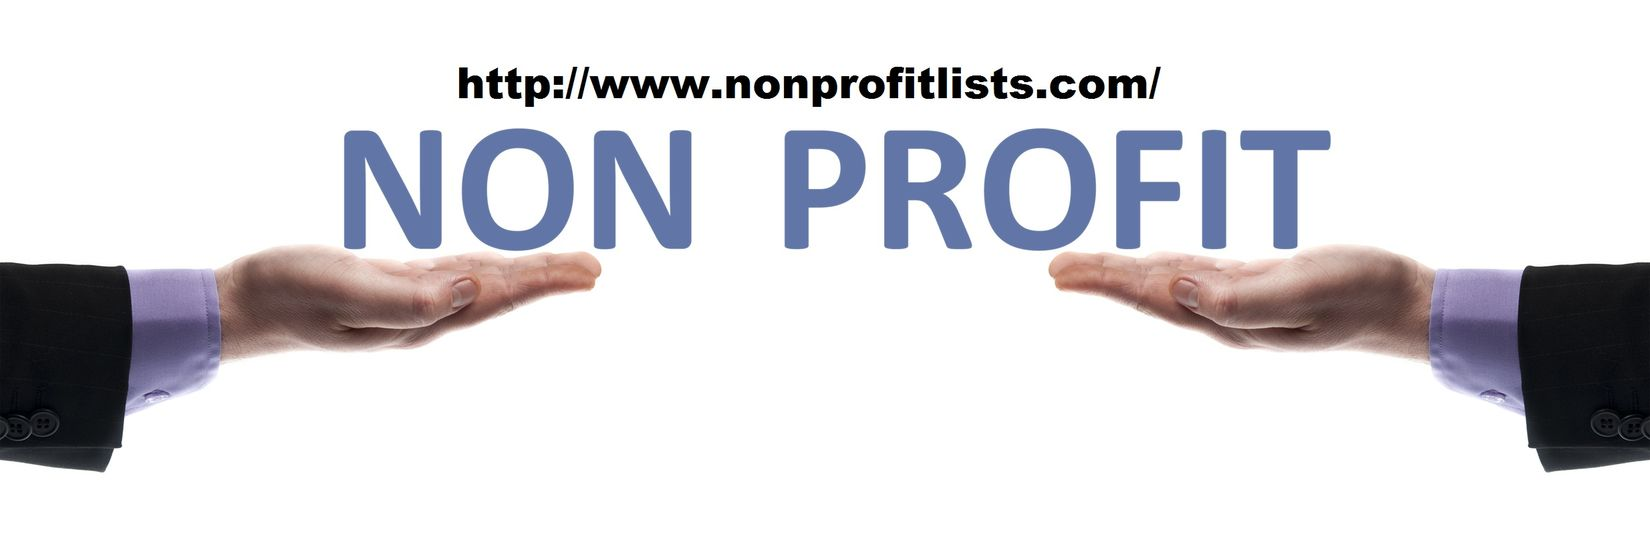 http://www.nonprofitlists.com/